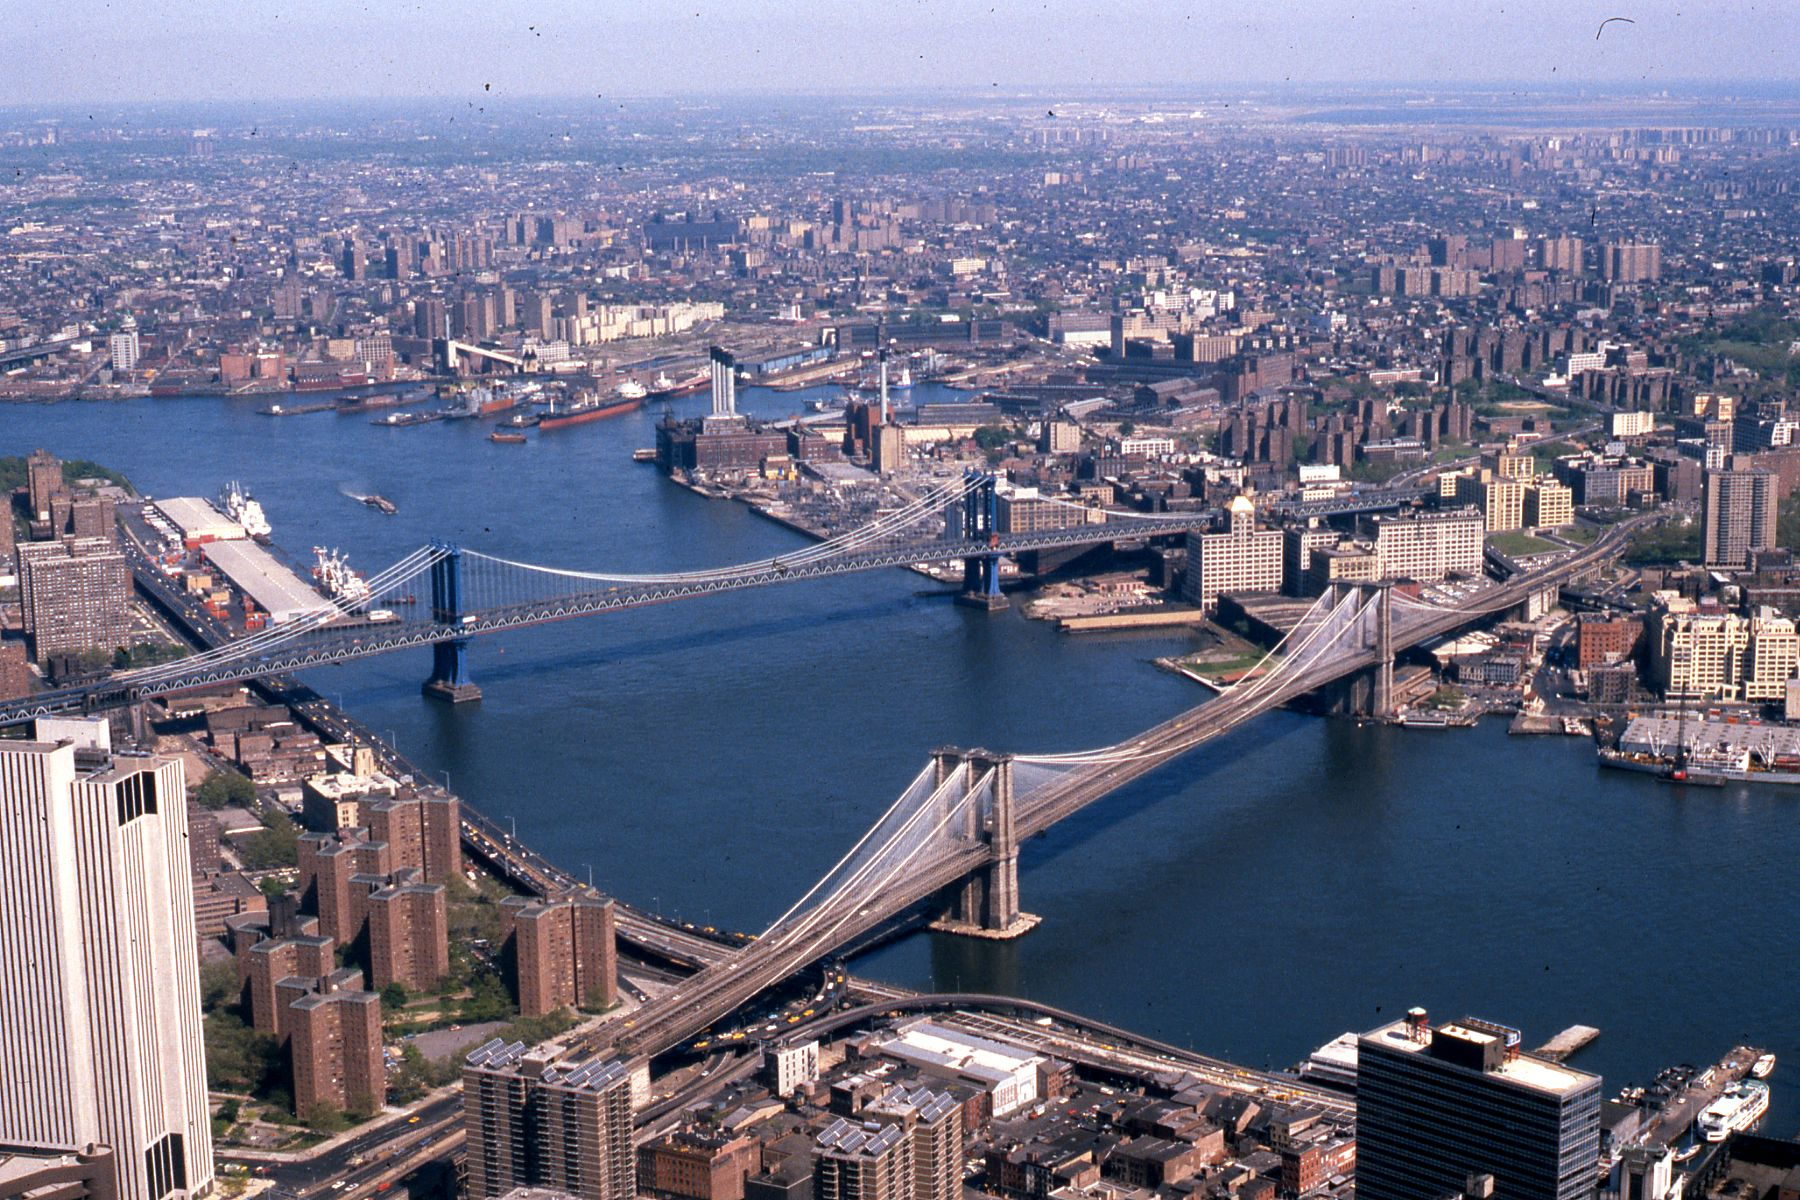 List of bridges and tunnels in New York City - Wikipedia